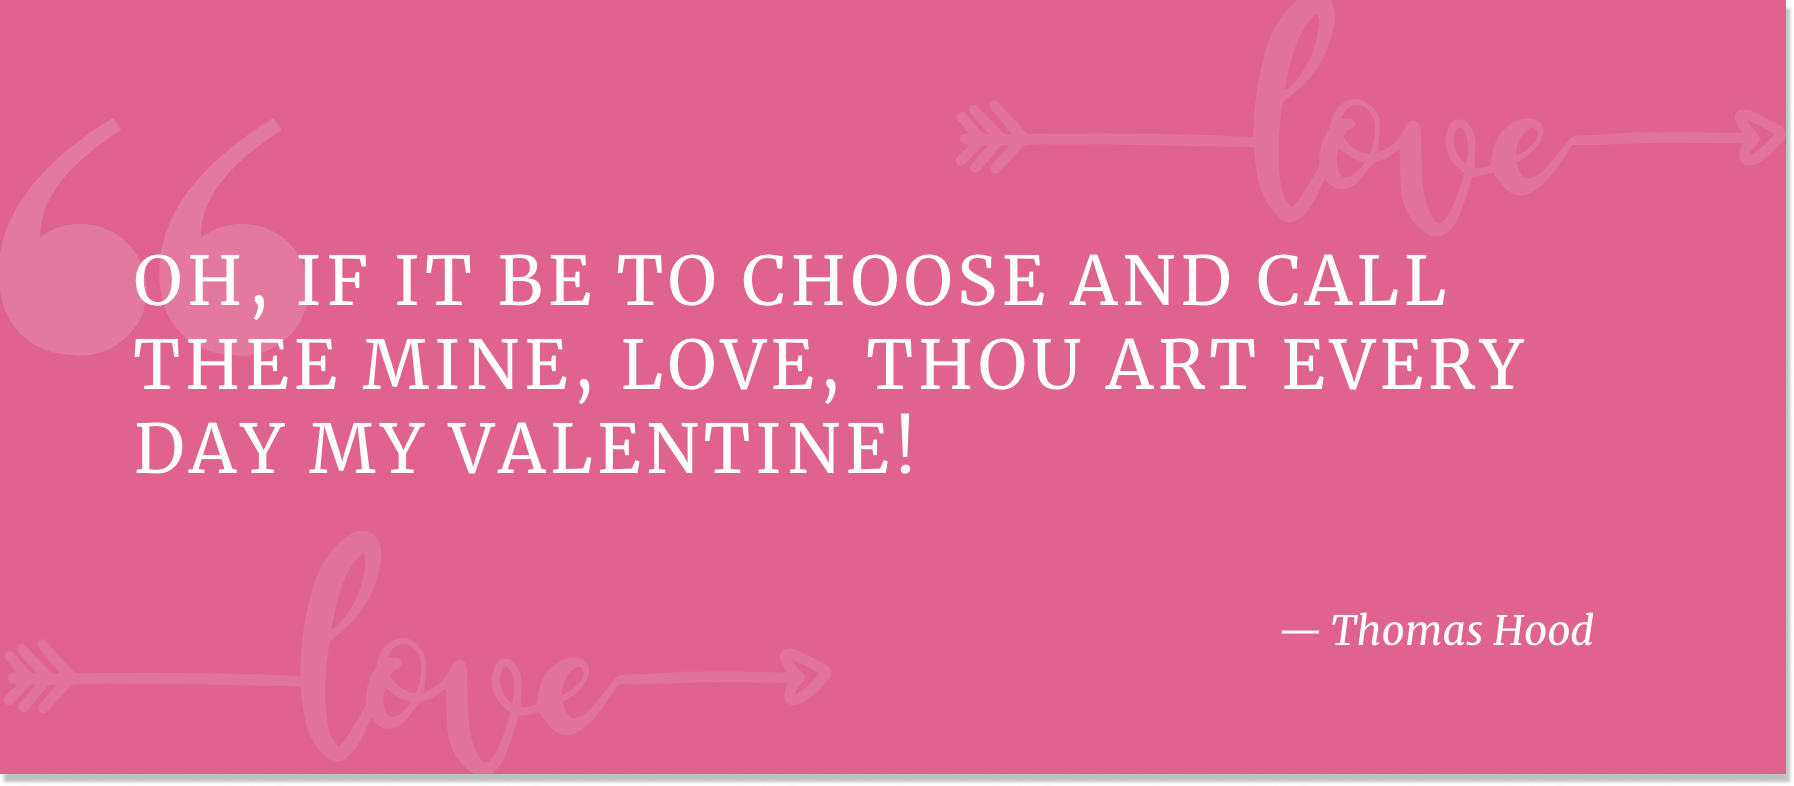 v-day quote_6